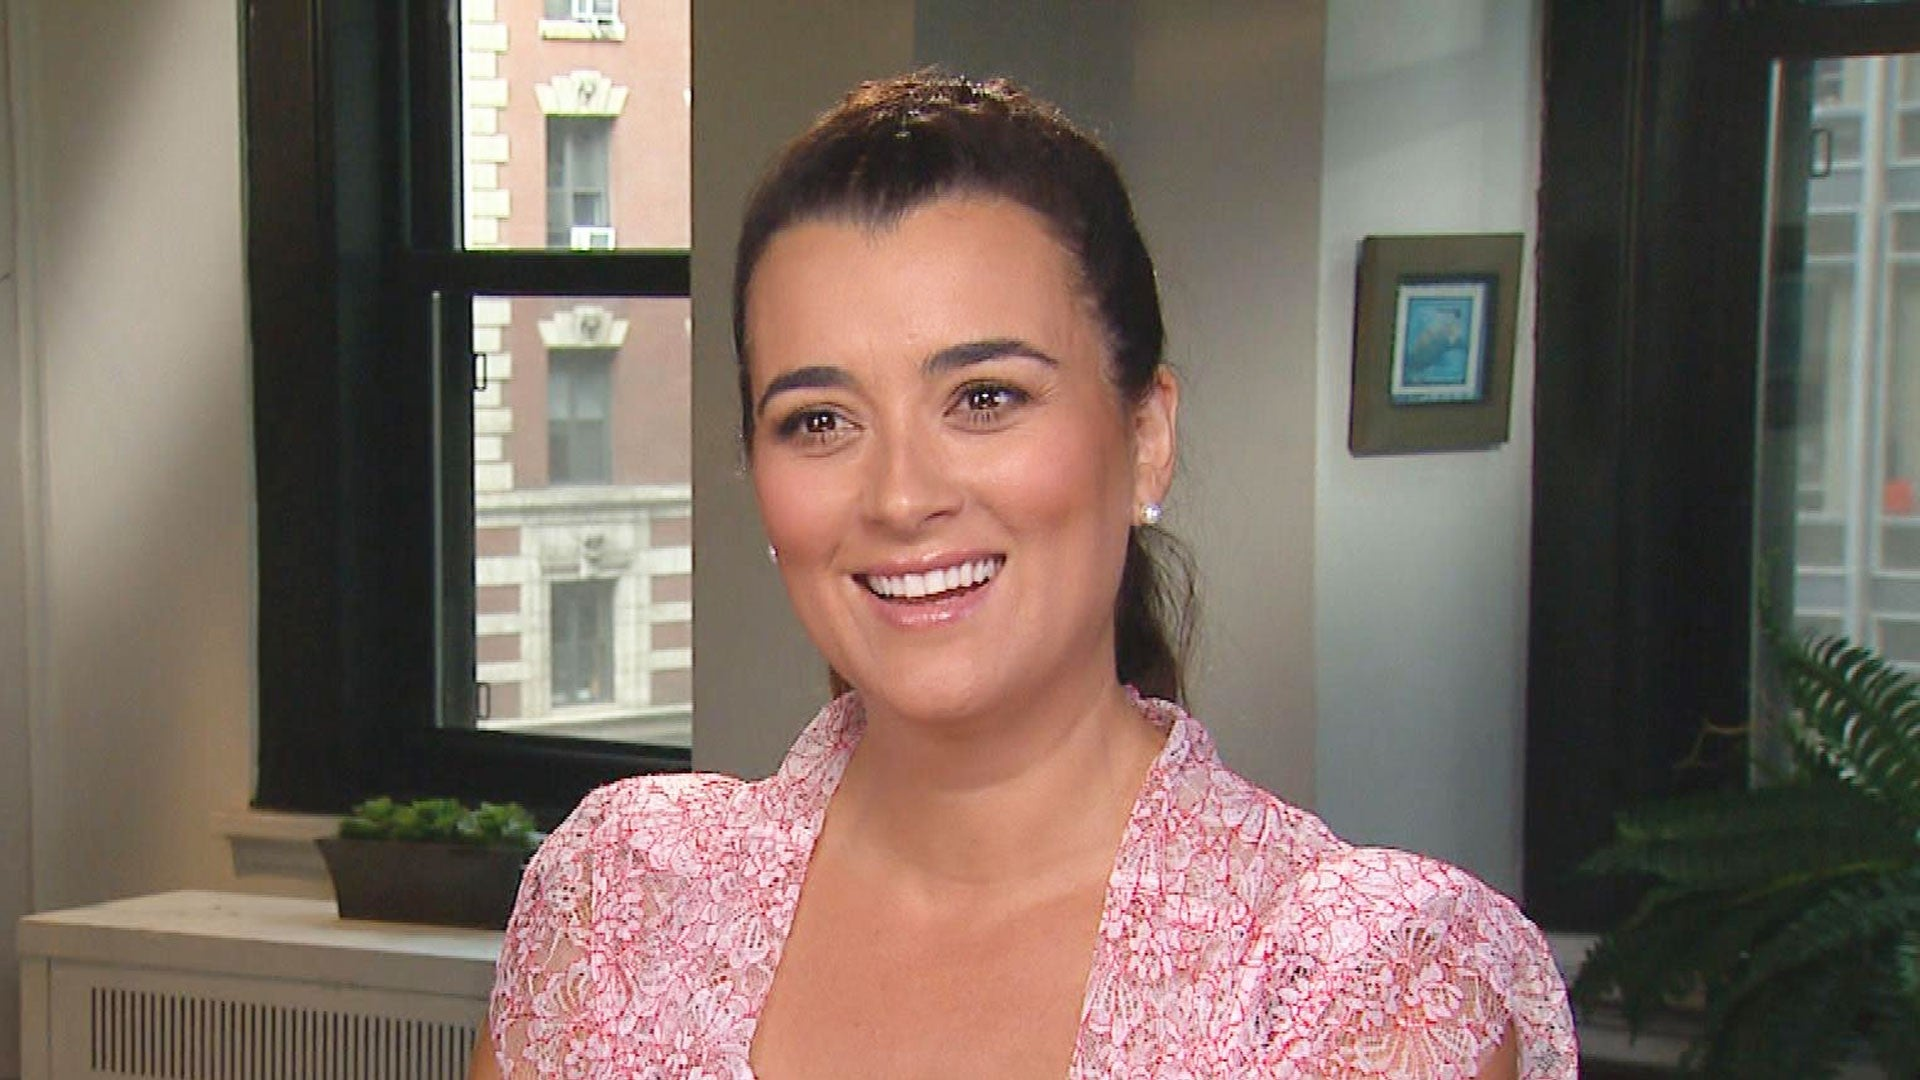 Ncis Season 17 Cote De Pablo Opens Up About Playing Ziva Again